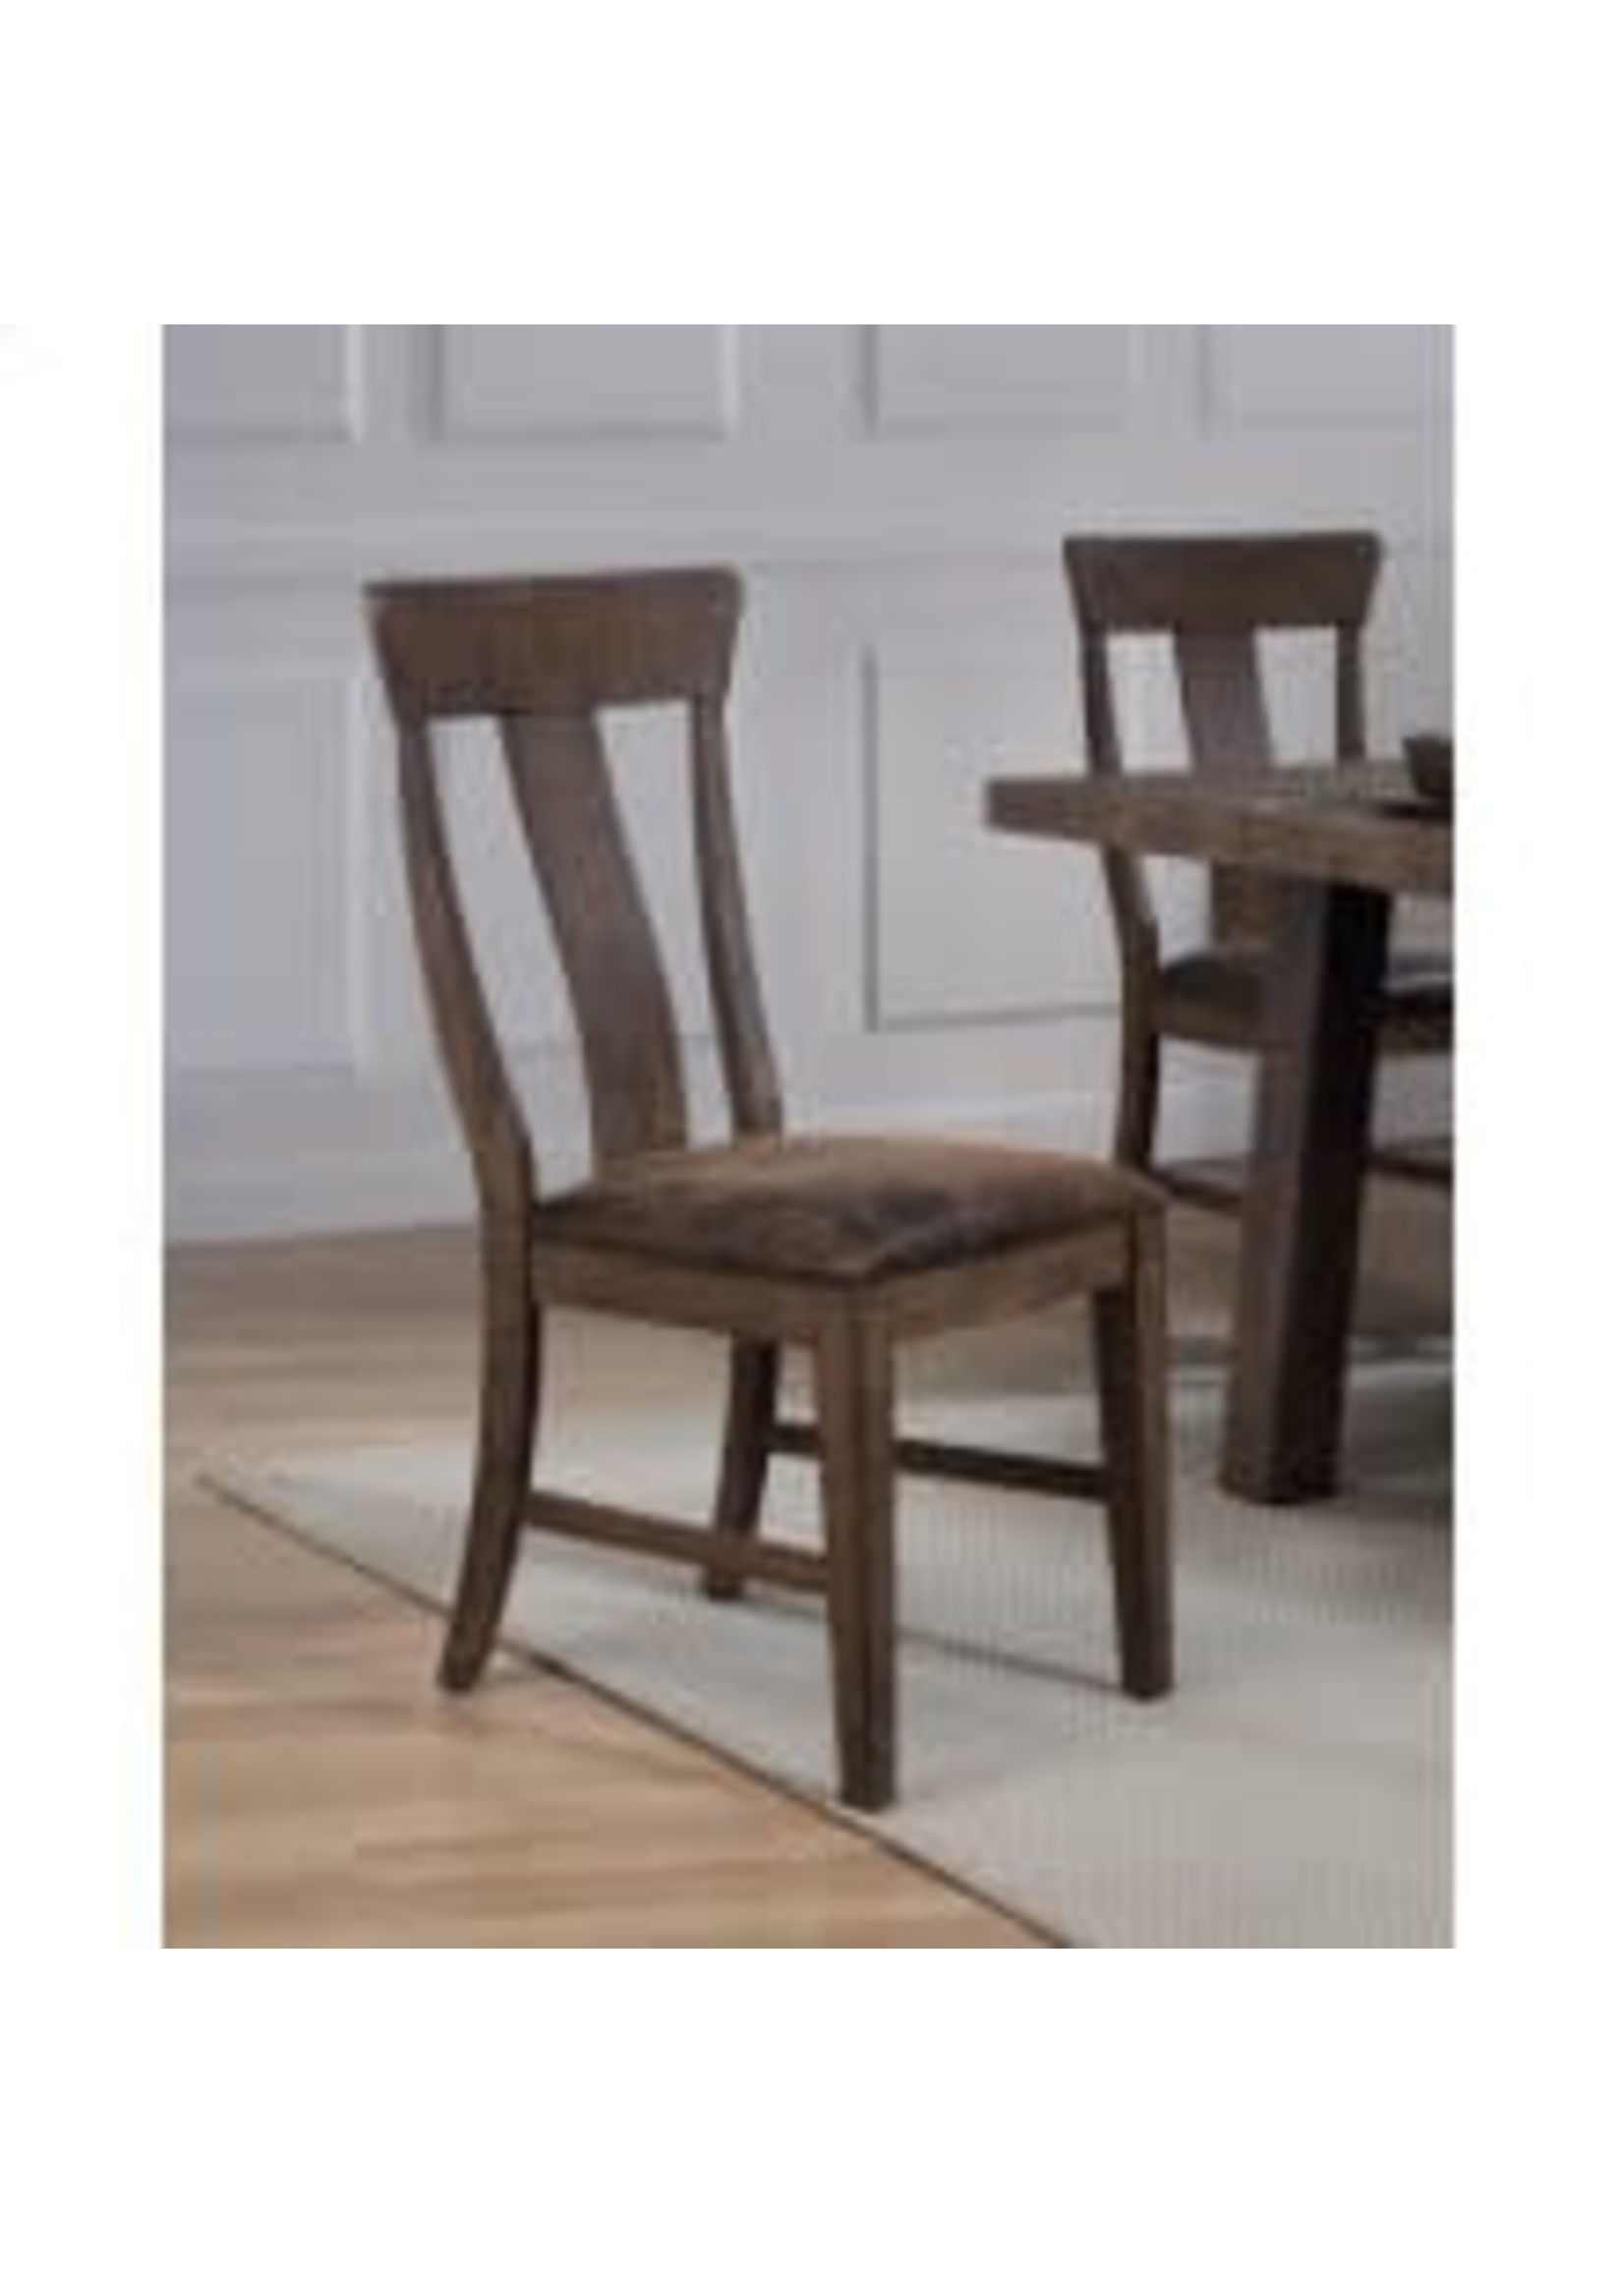 TENNESSEE ENTERPRISES TL001 SIDE CHAIR THE LOFT RUSTIC BROWN